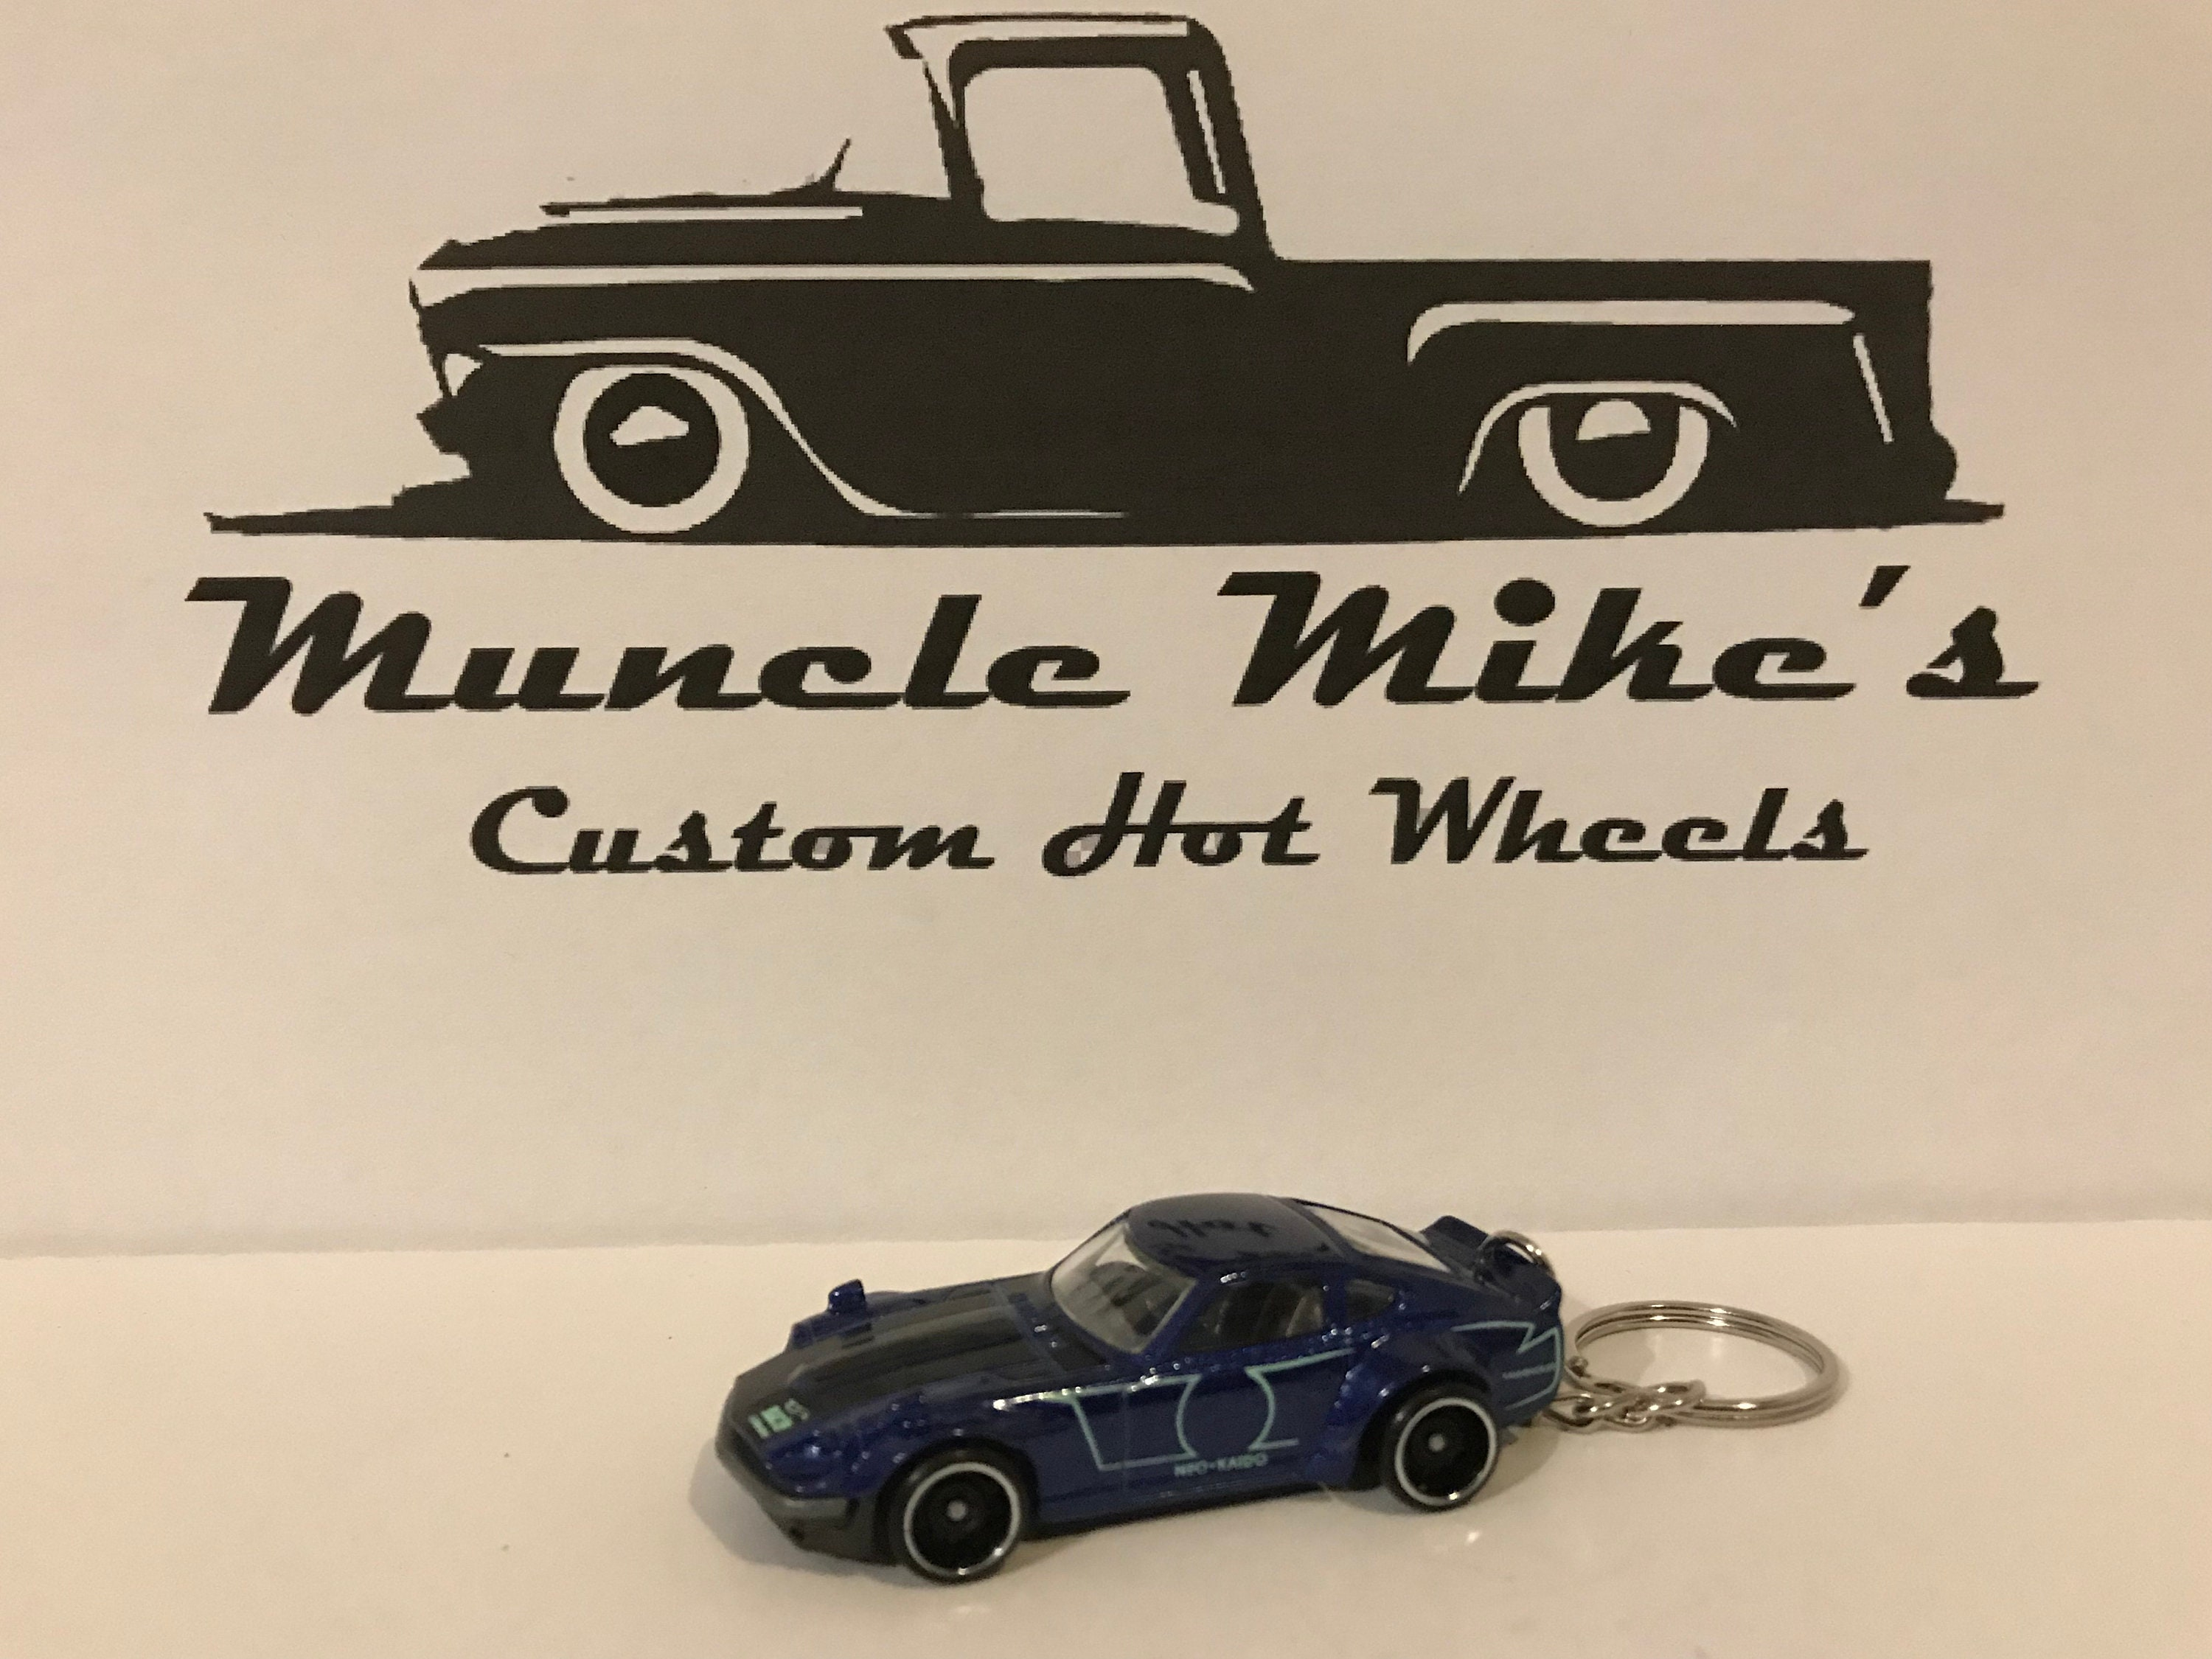 Custom Hot Wheels Blue Custom Datsun 240z Christmas Ornament,  Keychain or Zipper Pull